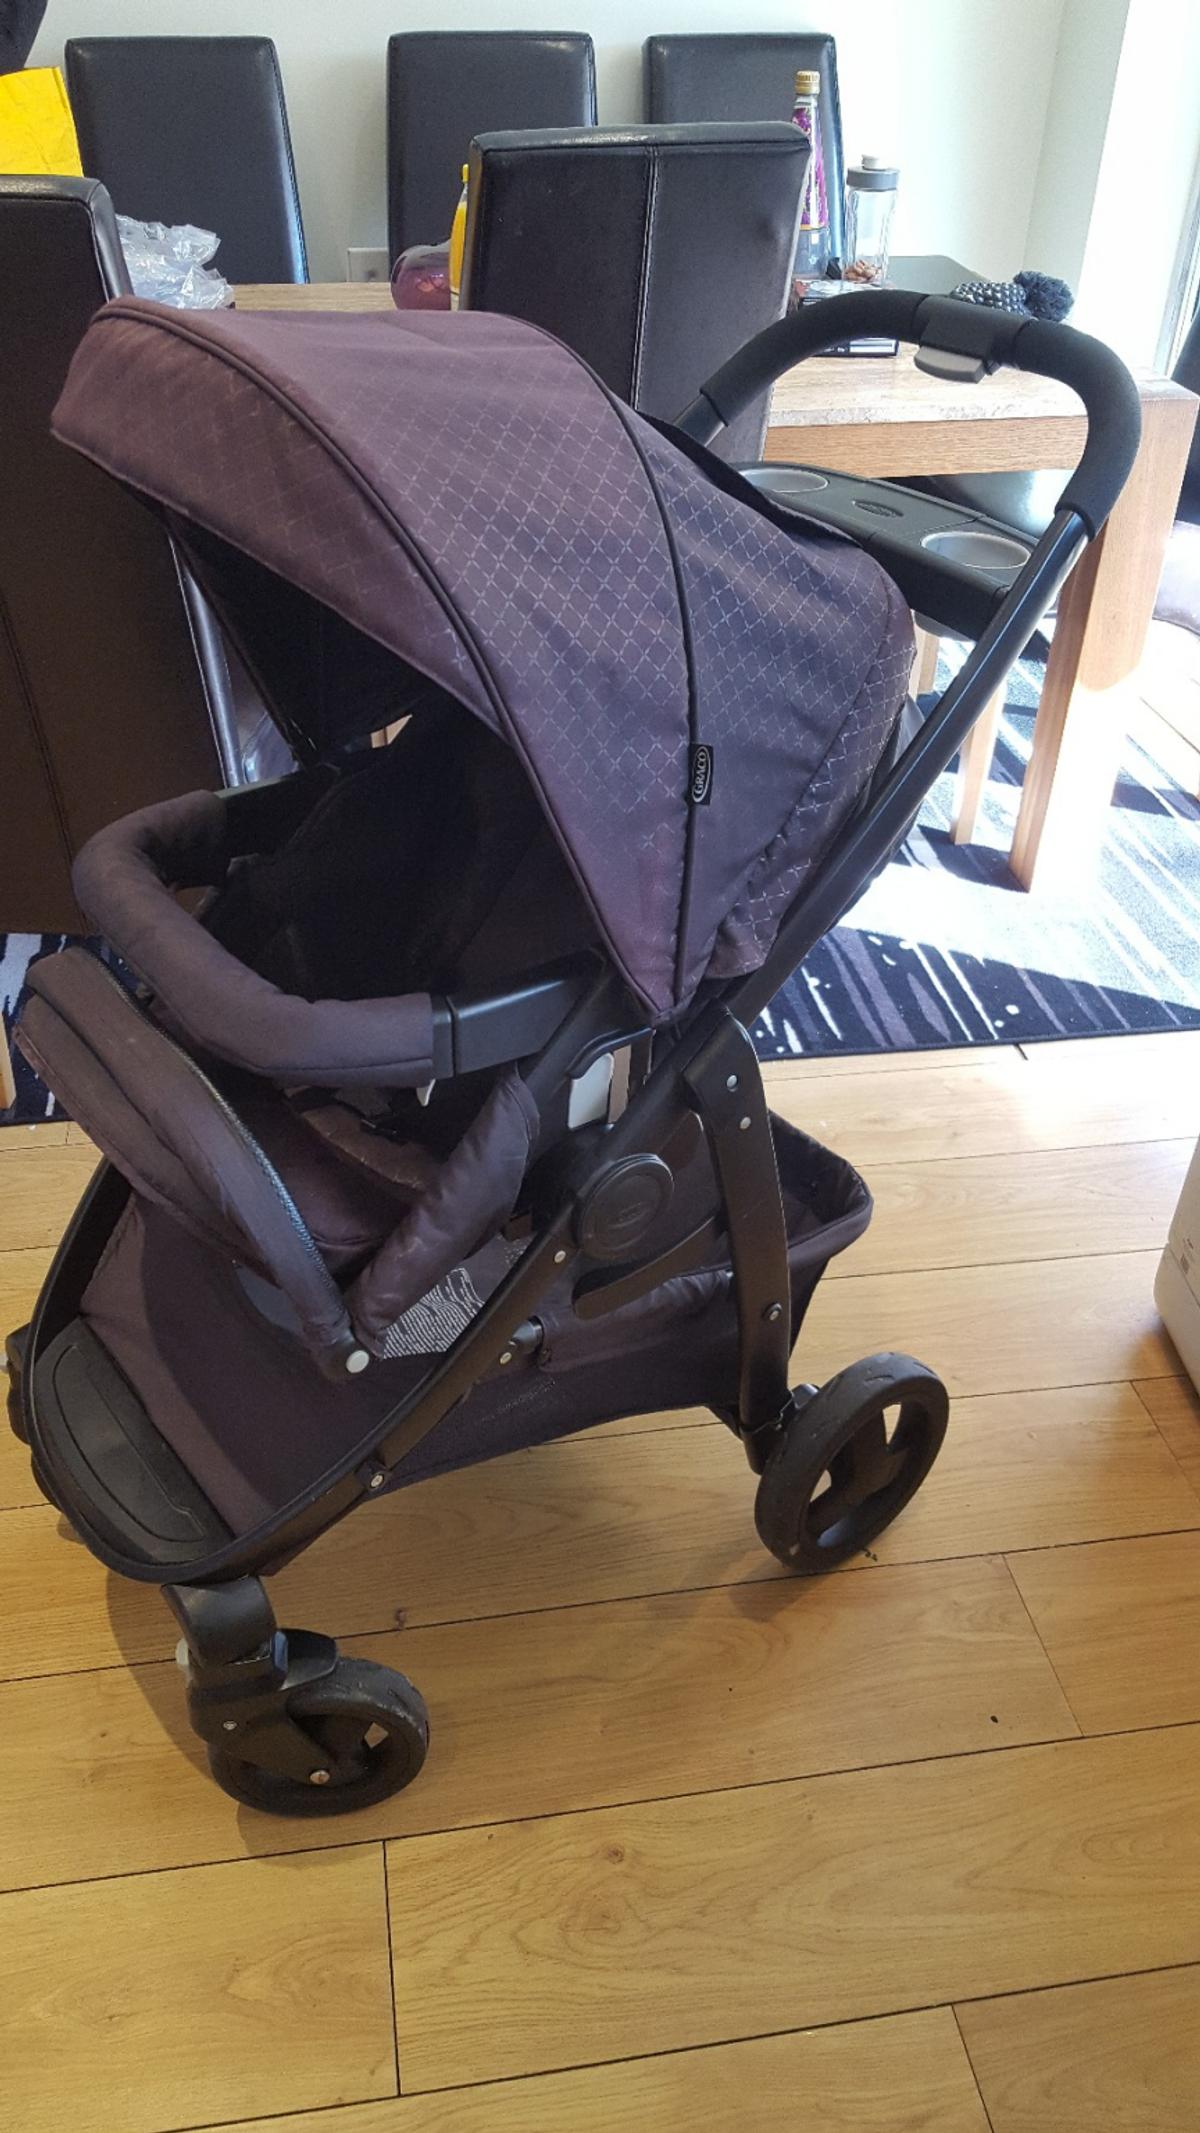 Graco Infant Car Seat Stroller Instructions Graco Baby Buggy With Car Seat In Lu4 Luton For 40 00 For